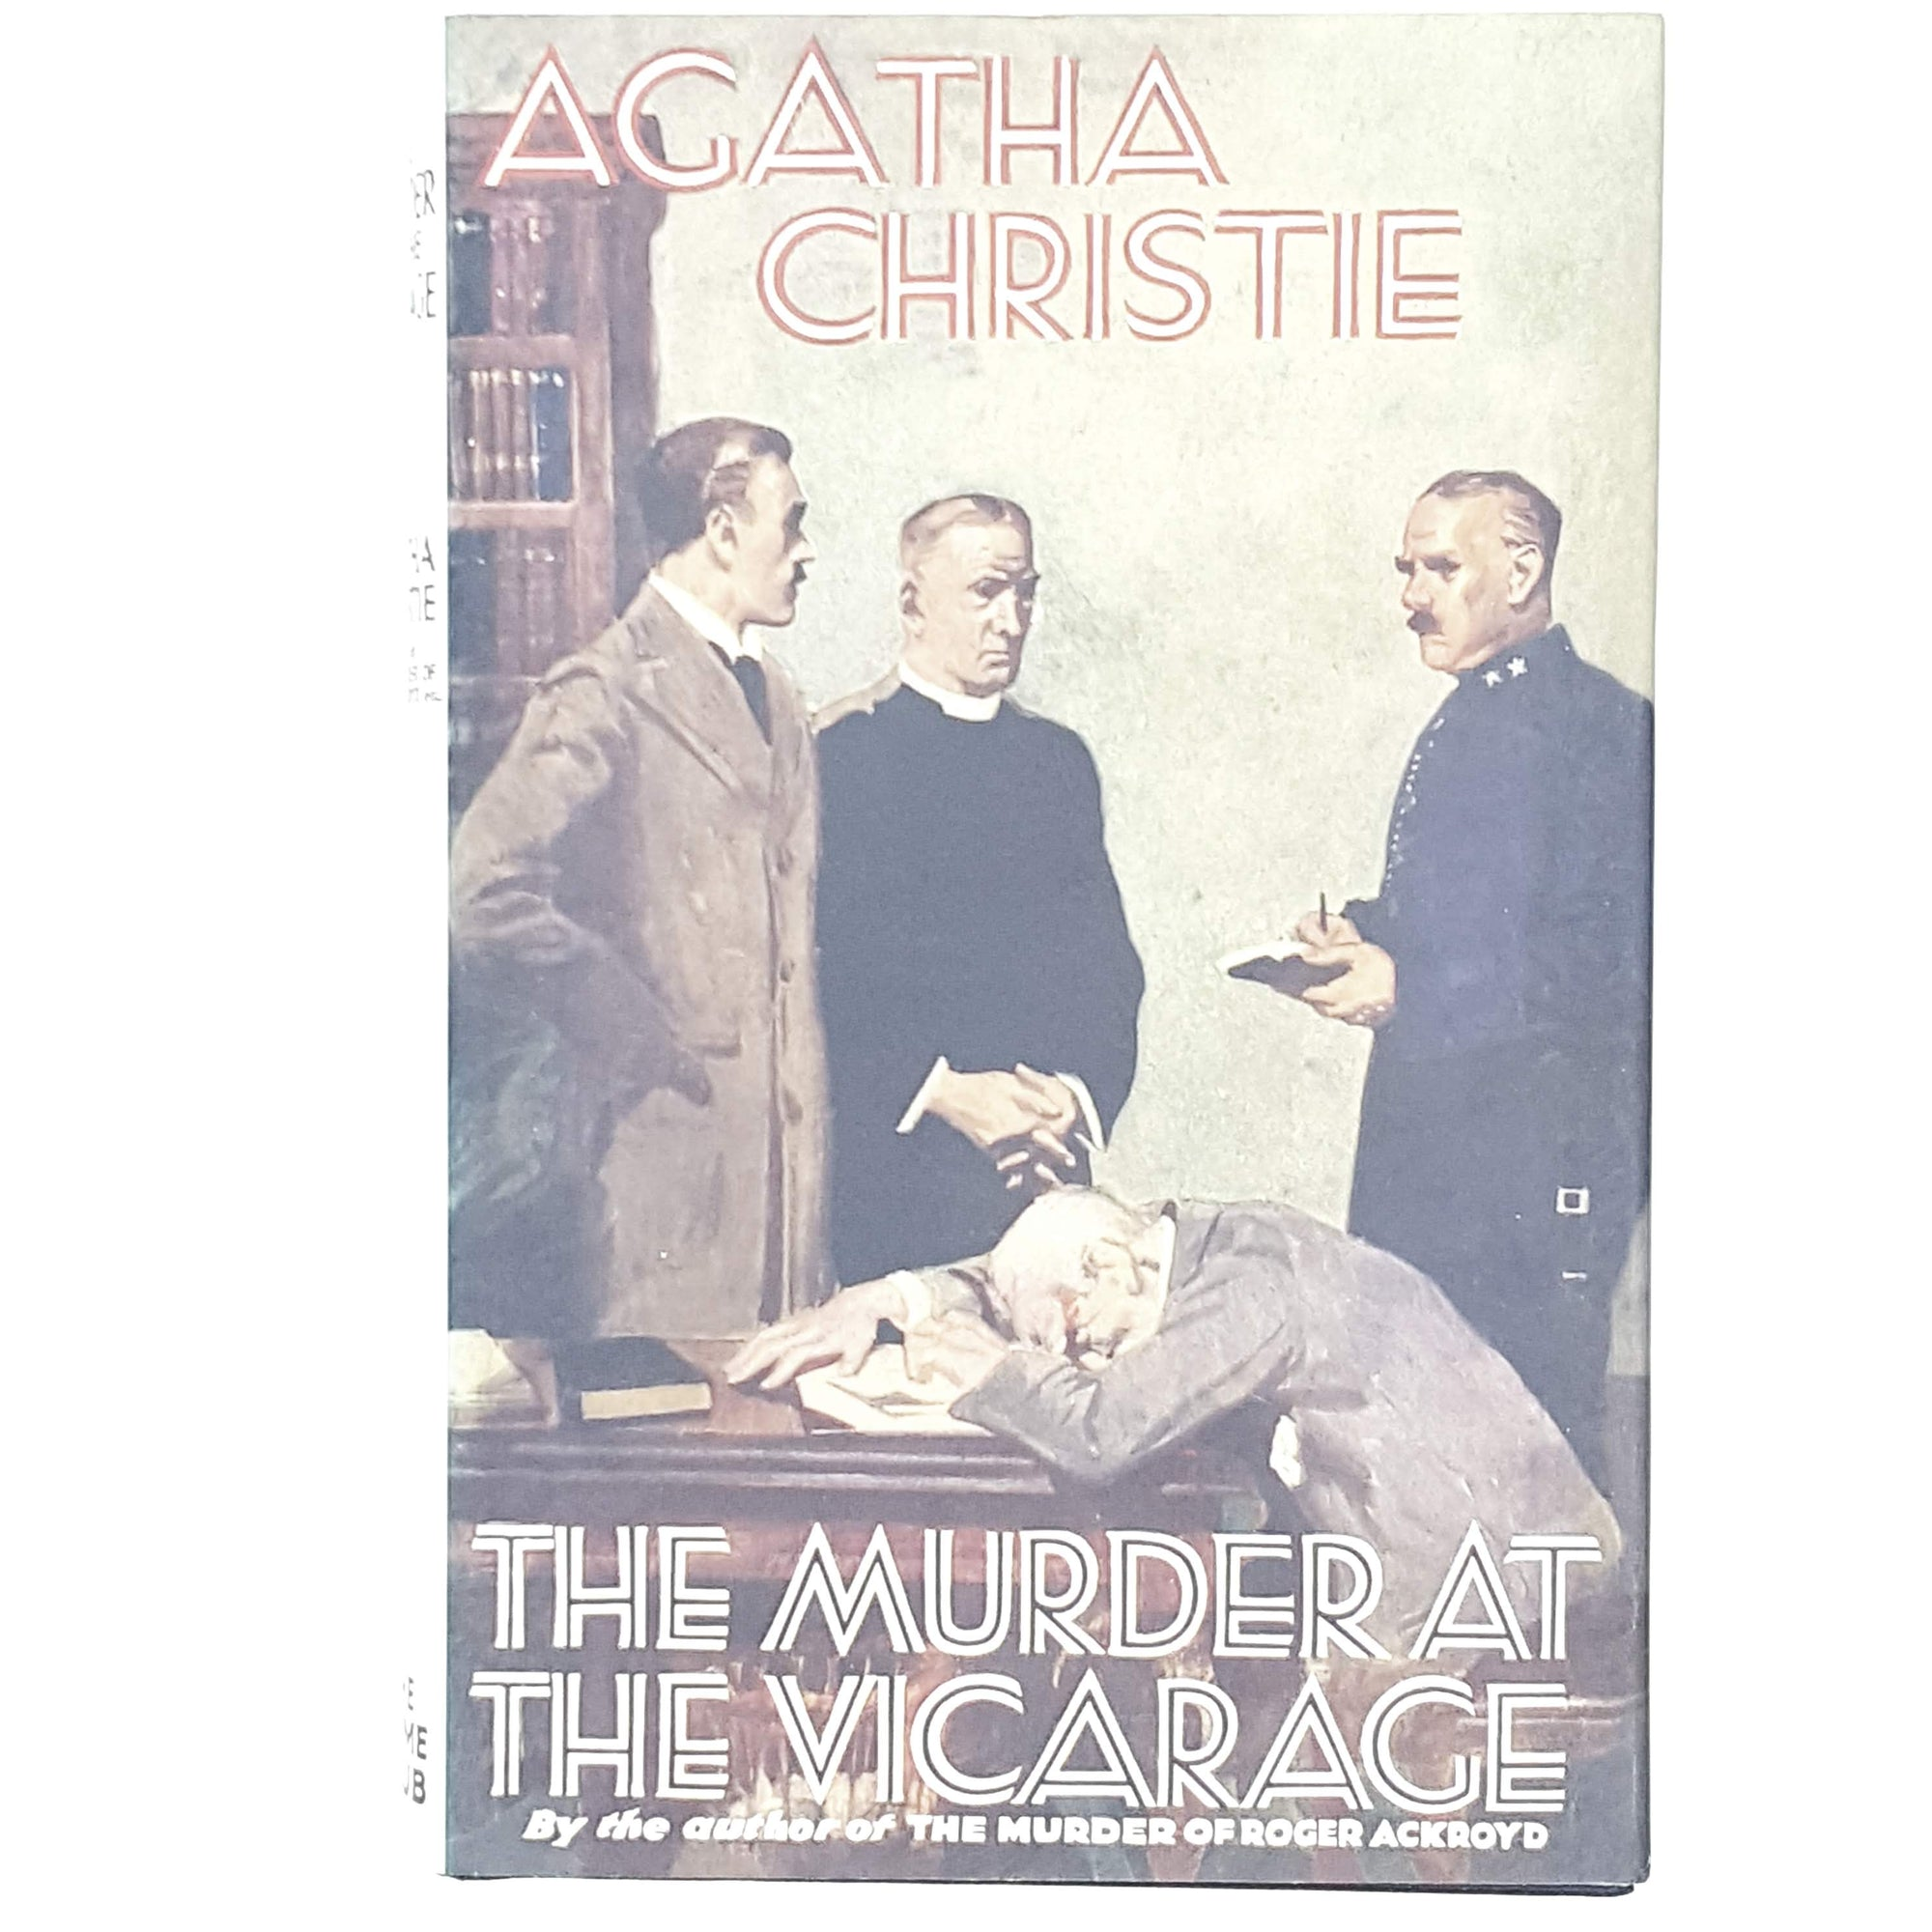 brown-earth-tones-agatha-christie-crime-vintage-book-country-house-library